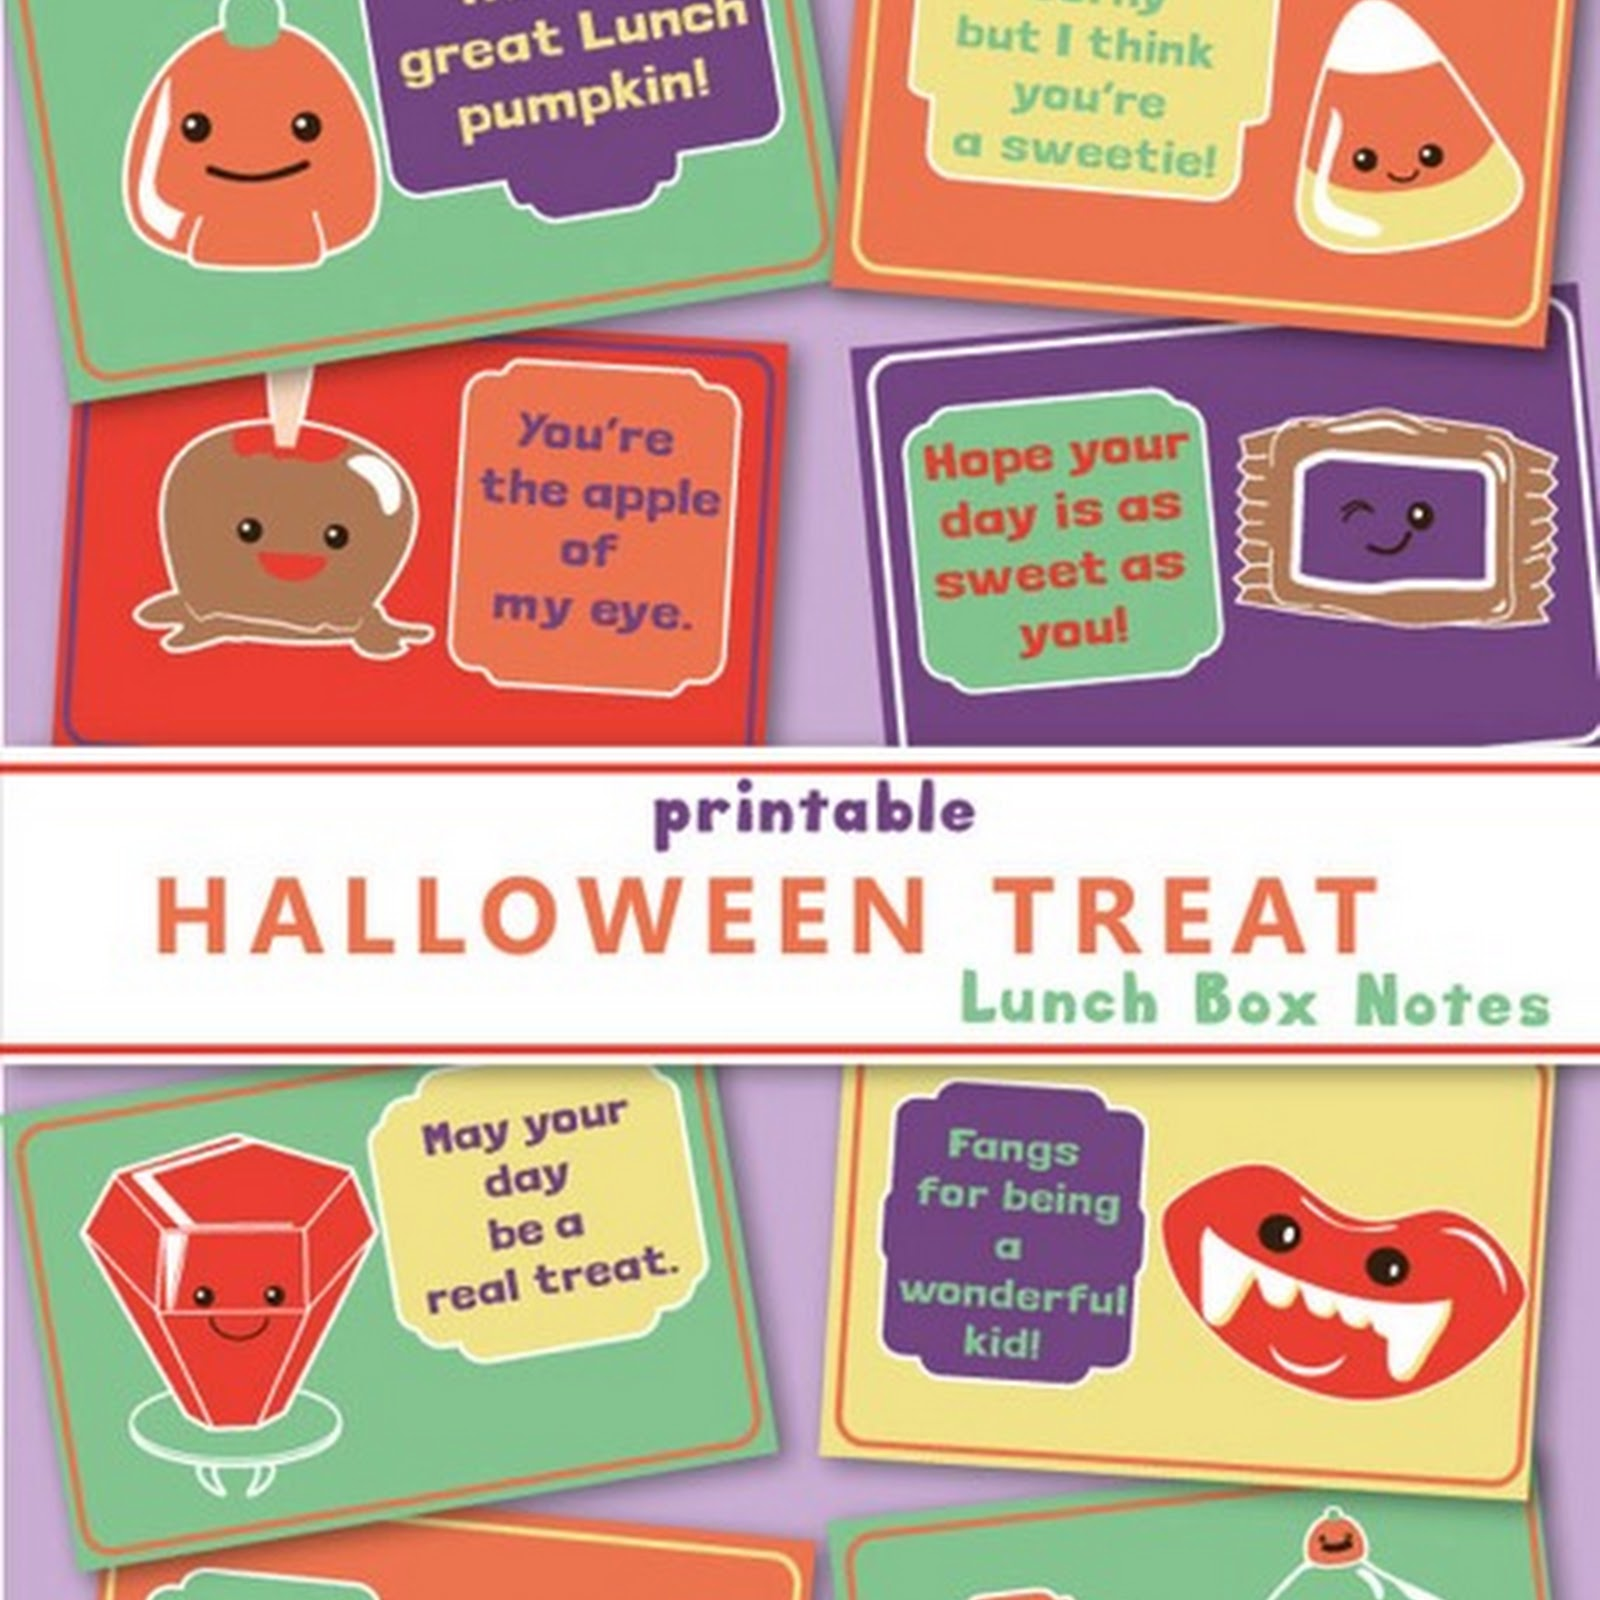 Free Printable Halloween Themed Lunchbox Notes for Kids